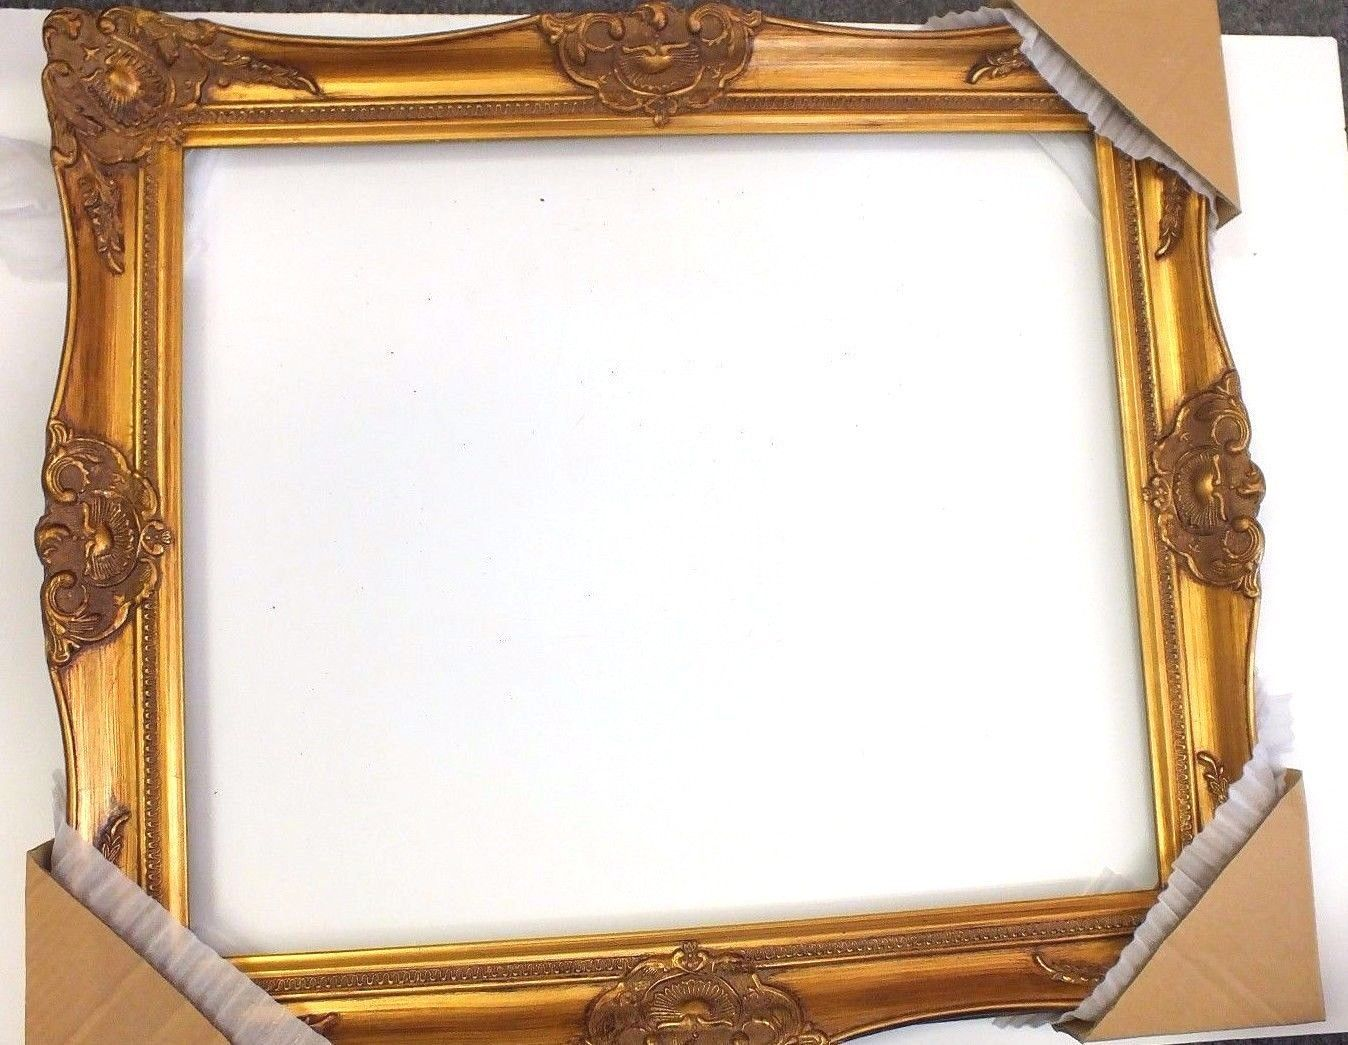 Gold leaf ornate heavy picture frame 20 x 24 victorian wild west gold leaf ornate heavy picture frame 20 x 24 victorian wild west ebay jeuxipadfo Choice Image